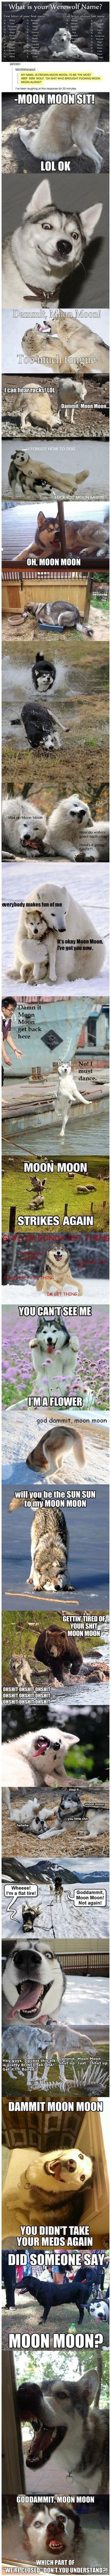 Funny Pictures brought to you by LolSnaps. Constant updates of the best funny pictures on the web. Can't Stop Laughing, Funny Husky Pictures, Funny Pictures Hilarious, Funny Pins, The Funny, Moon Moon, Mine Meme, Majestic Names, Laugh Out Loud